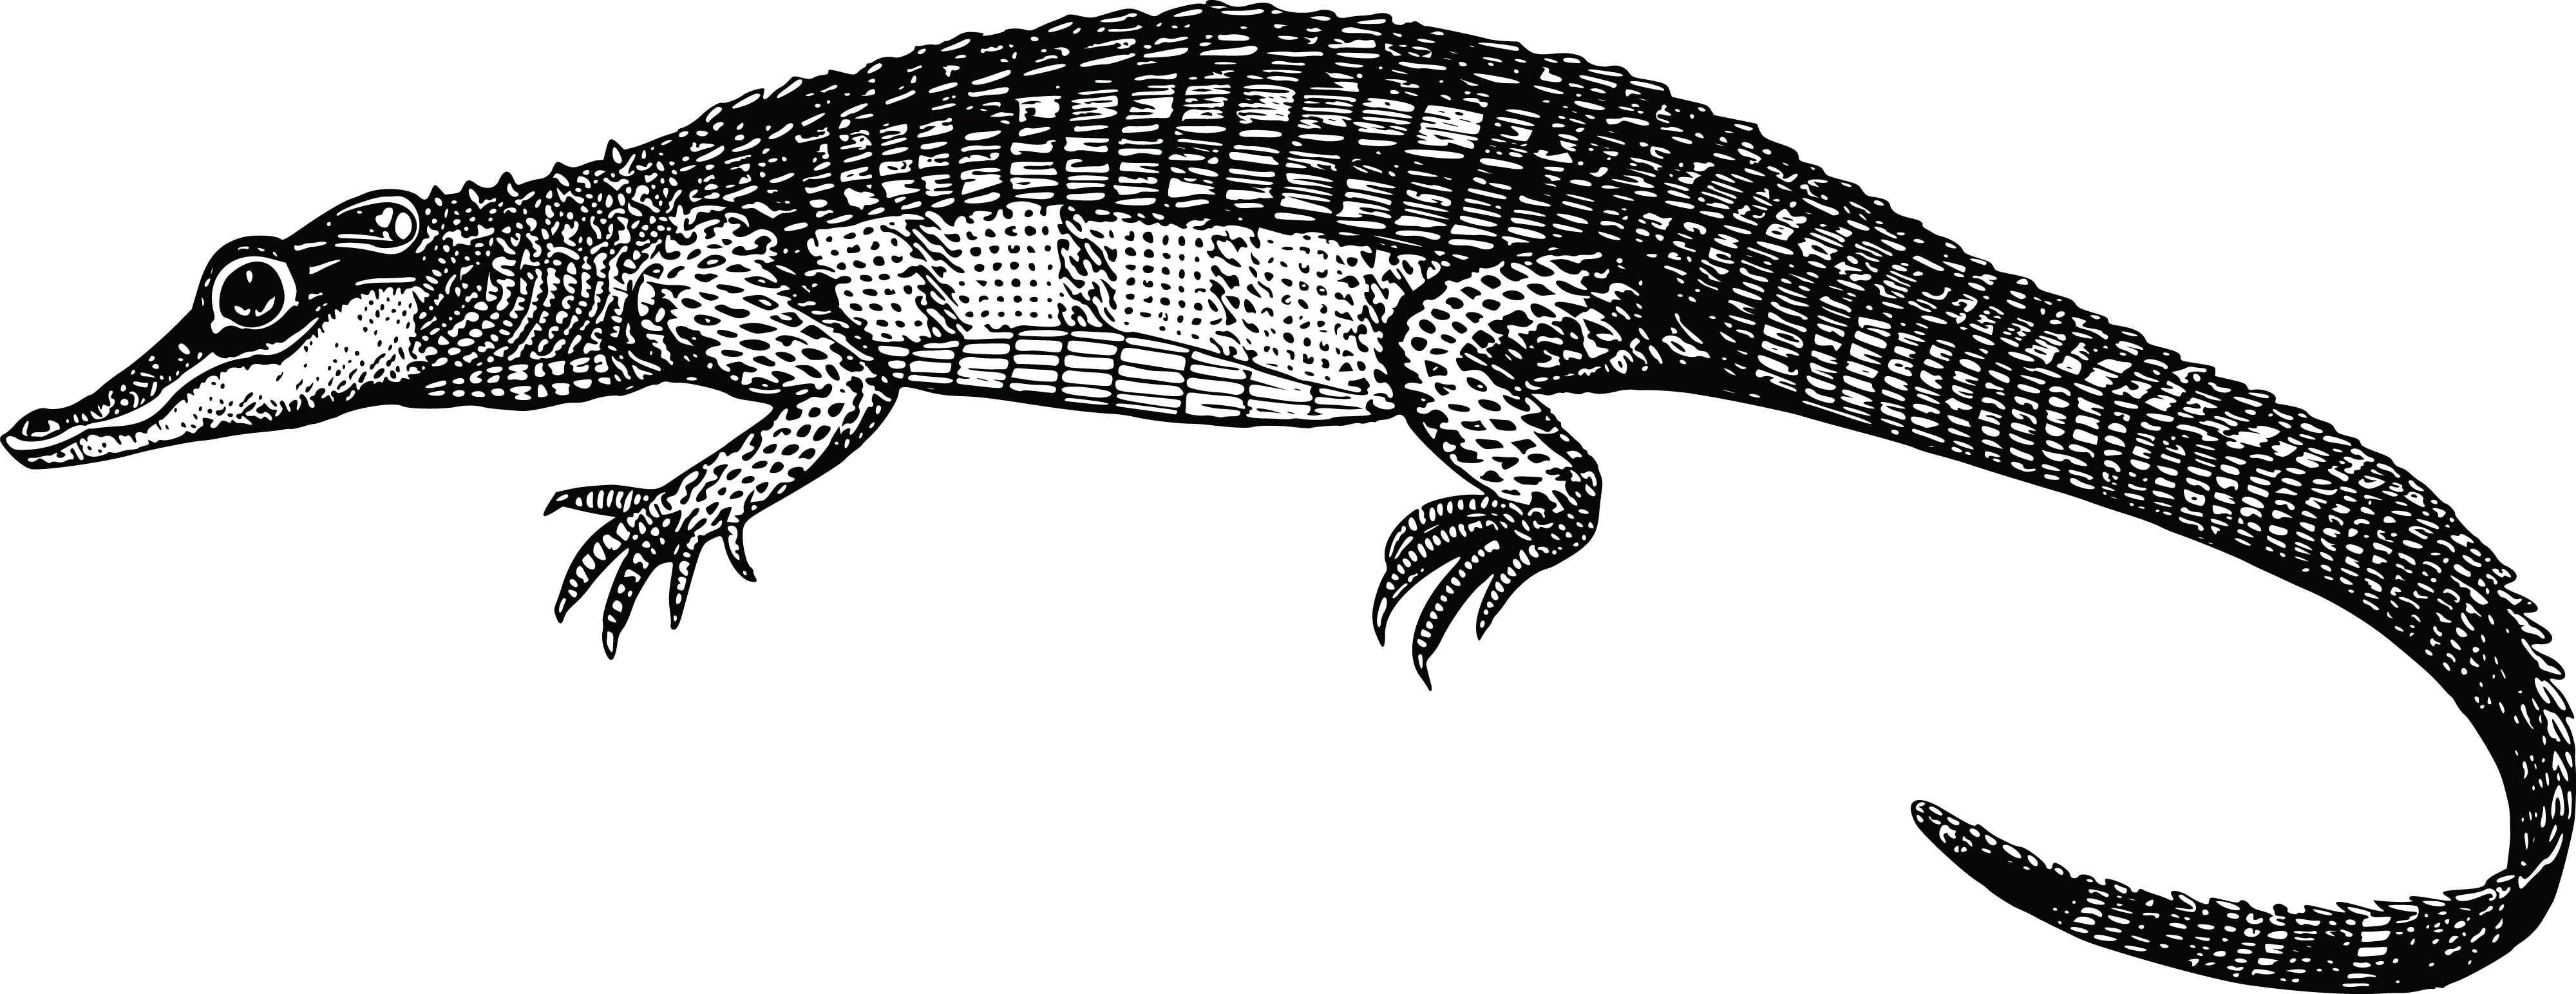 Clipart Of A black and white Alligator for Clipart Crocodile Black And White  70ref